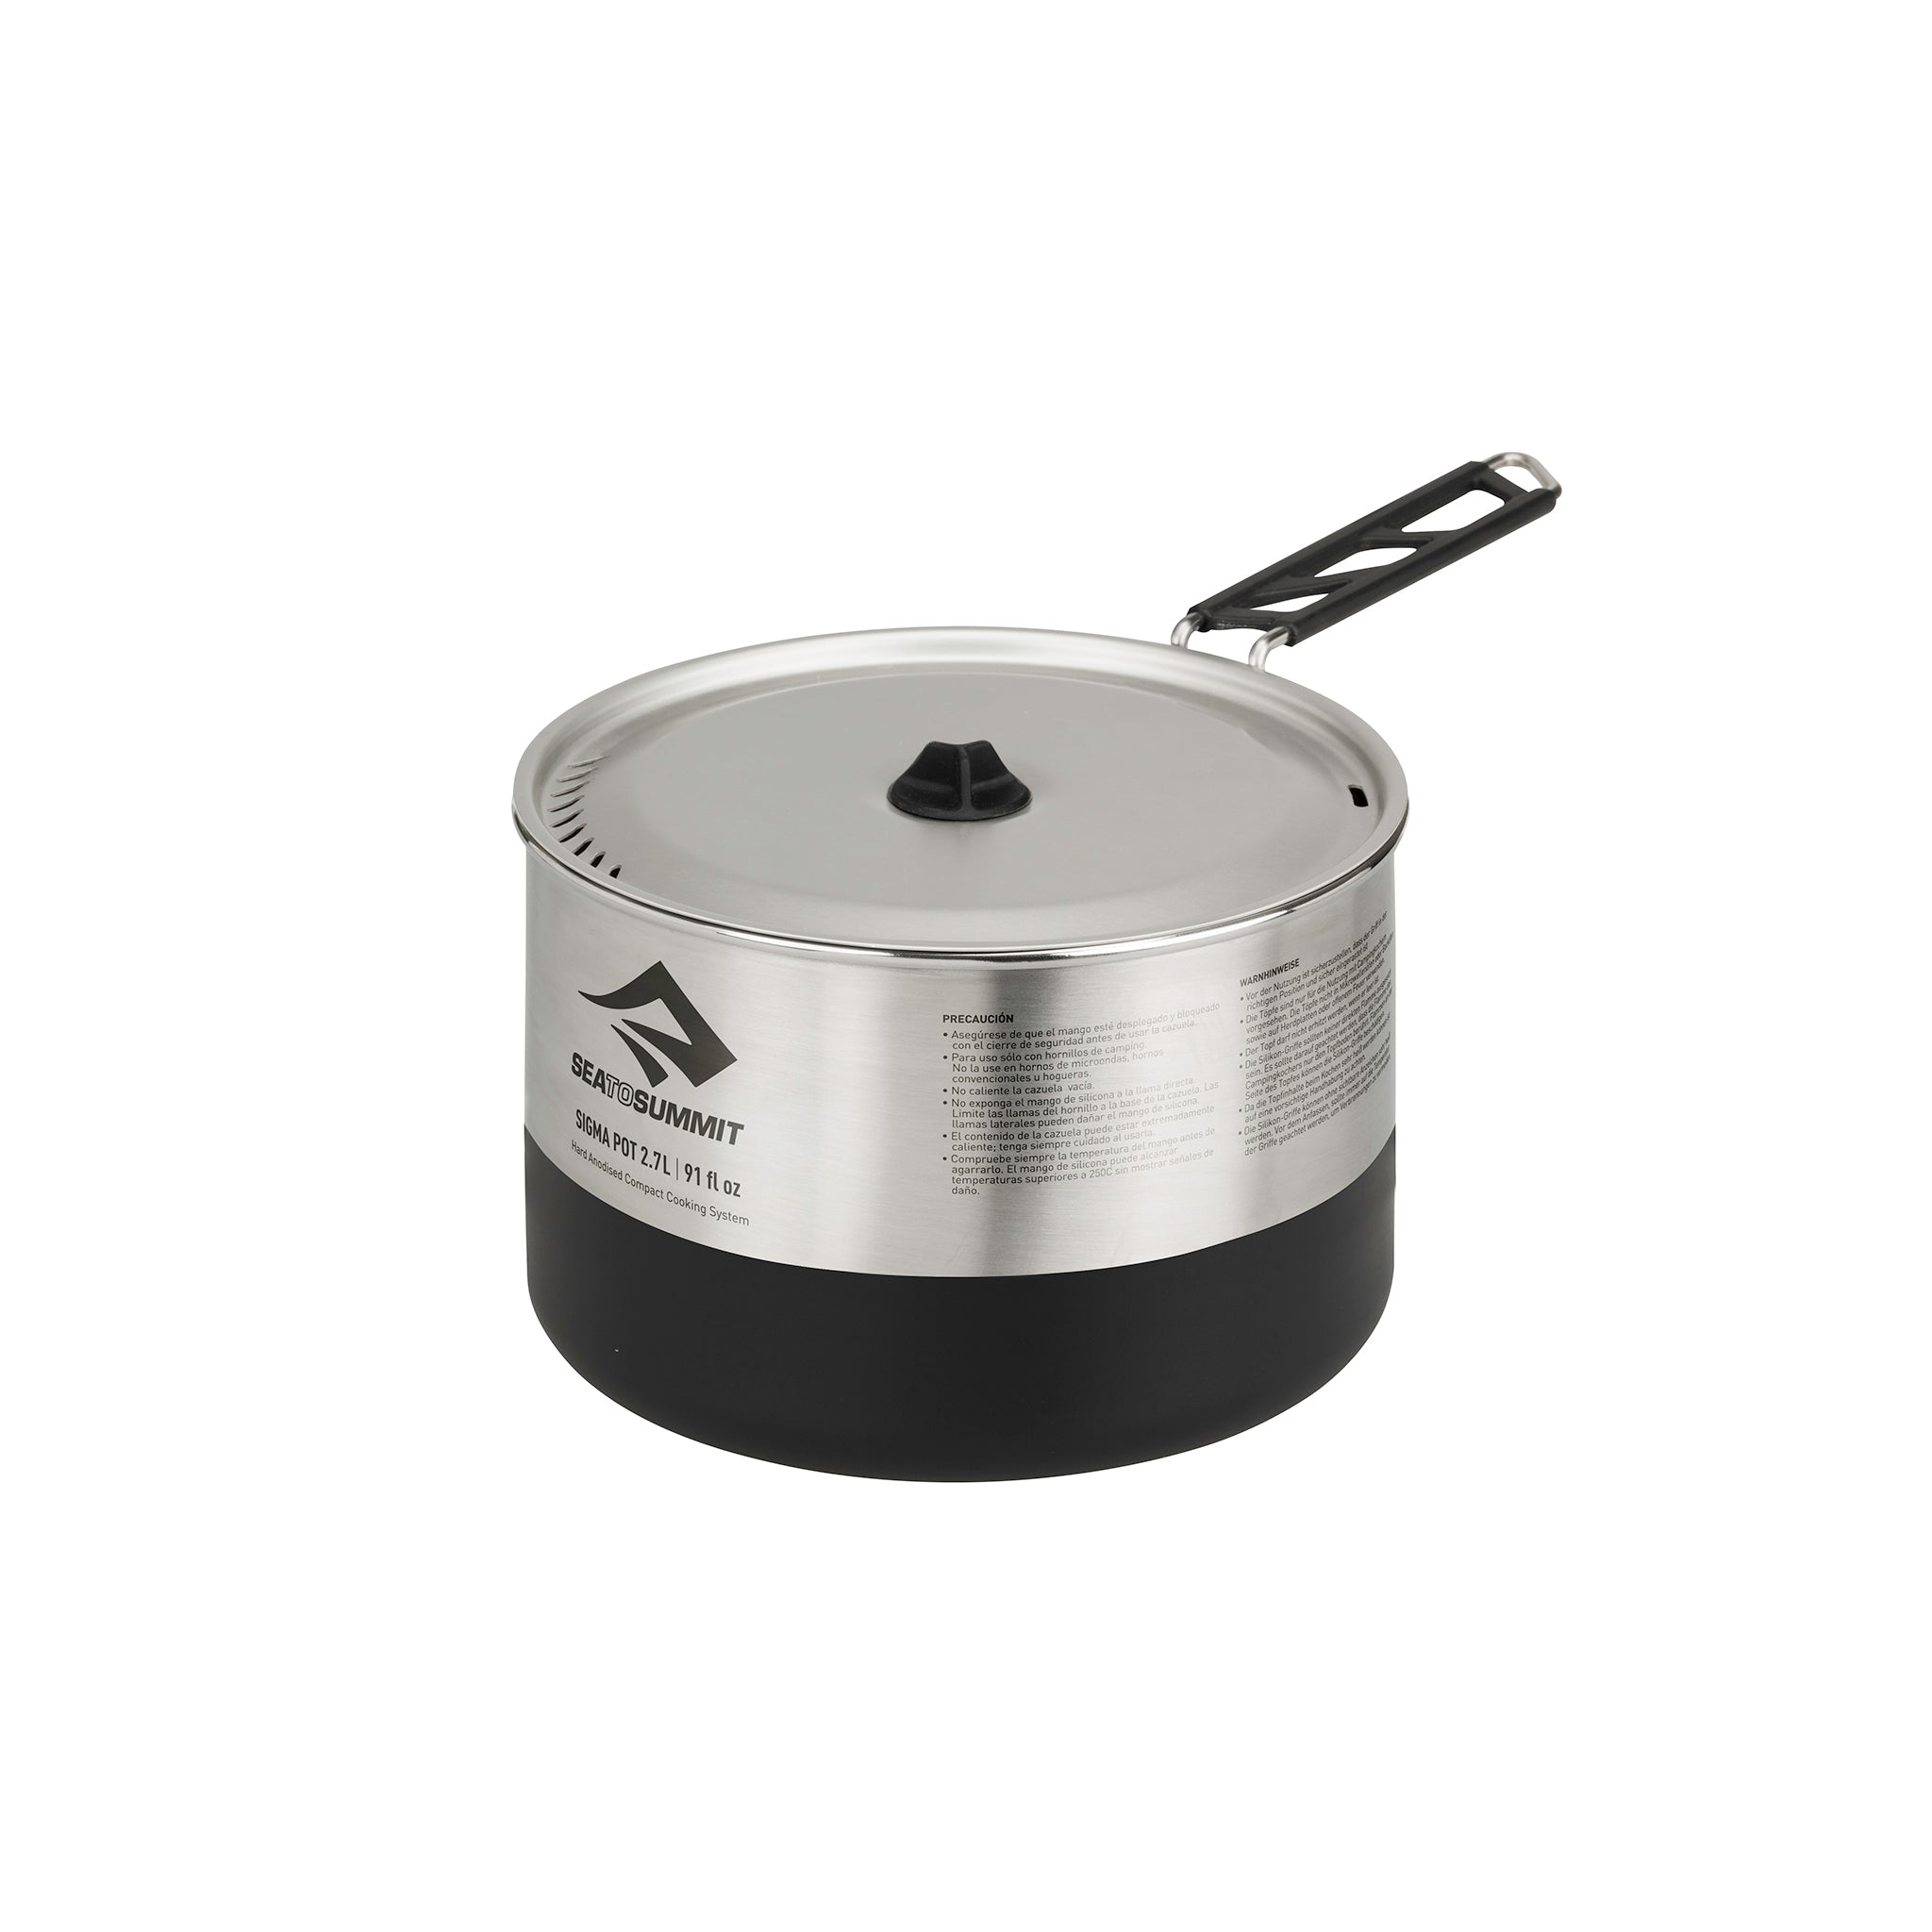 Sigma Stainless Steel Portable Pot for Camping _ 2.7 Liter